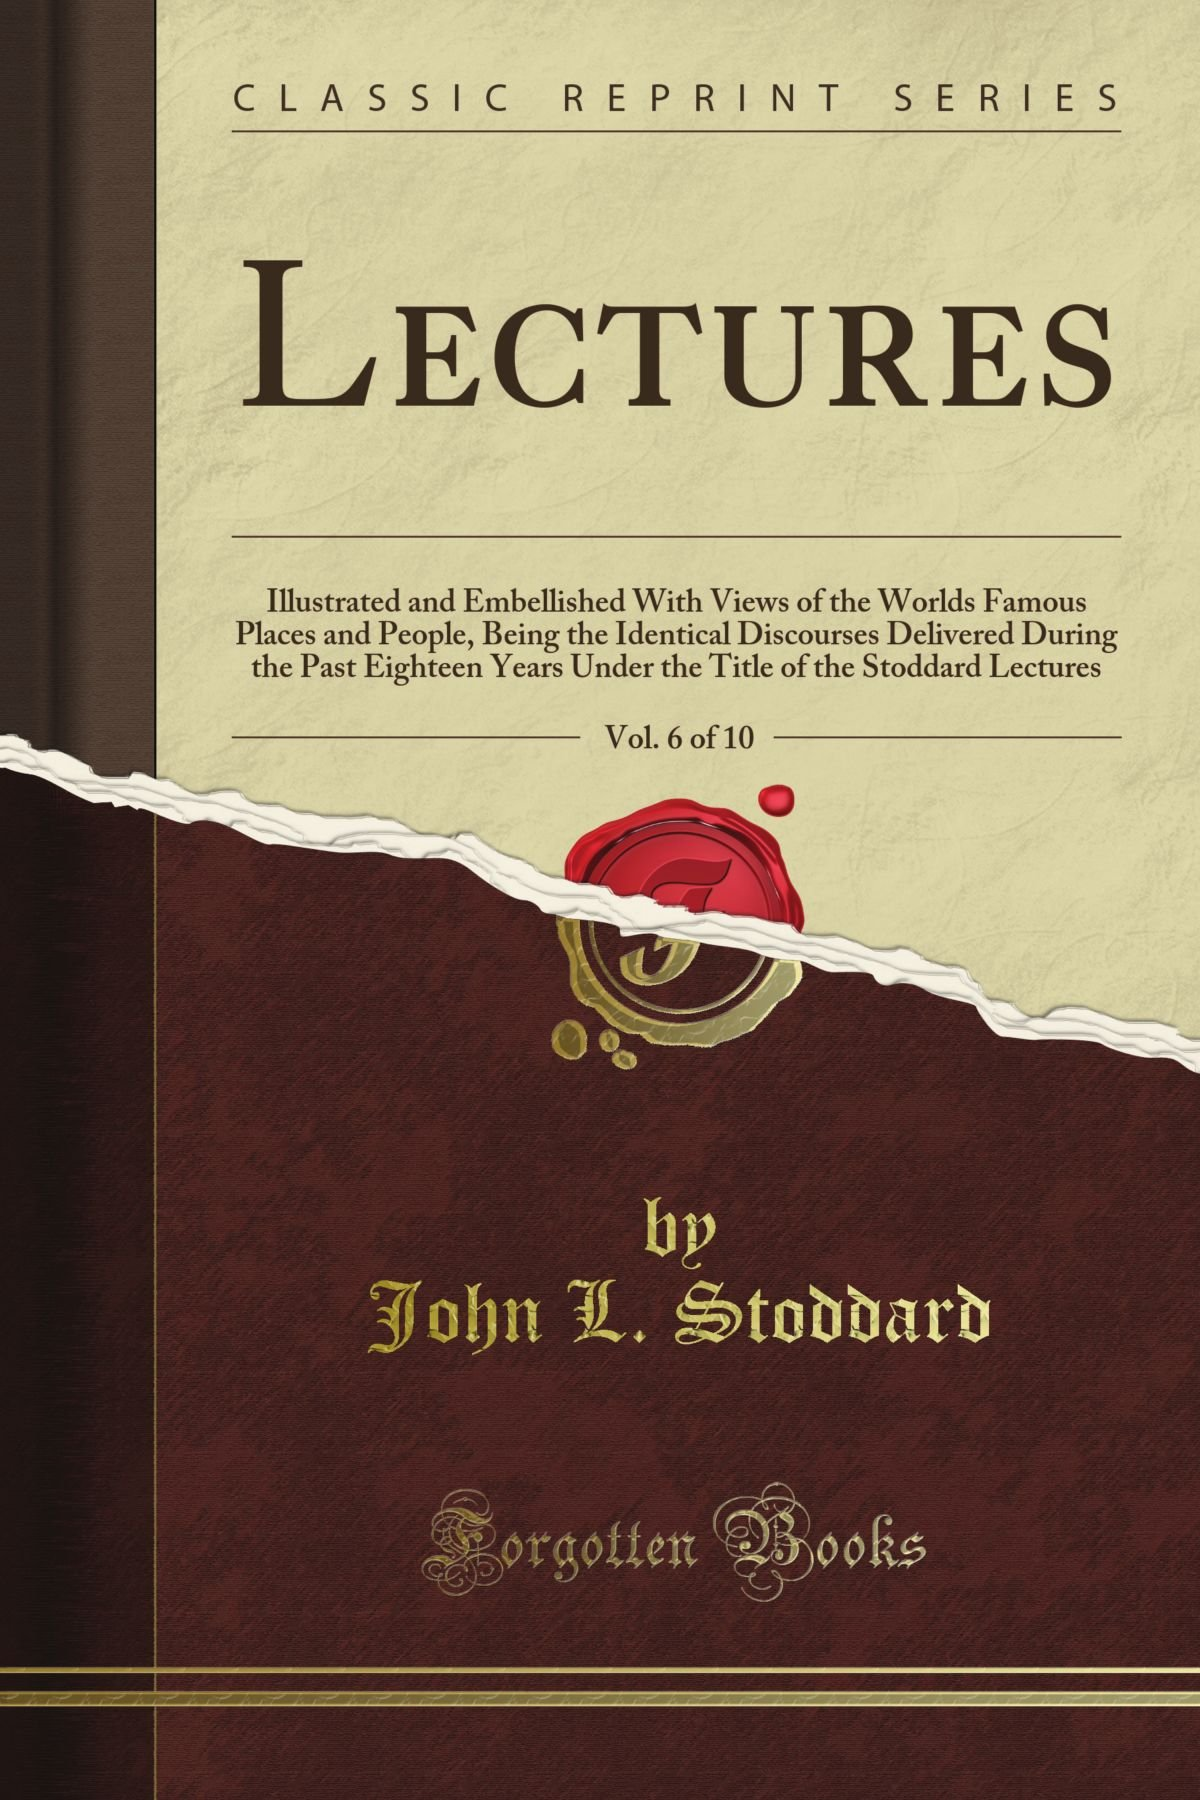 Read Online Lectures: Illustrated and Embellished With Views of the World's Famous Places and People, Being the Identical Discourses Delivered During the Past ... Lectures, Vol. 6 of 10 (Classic Reprint) PDF